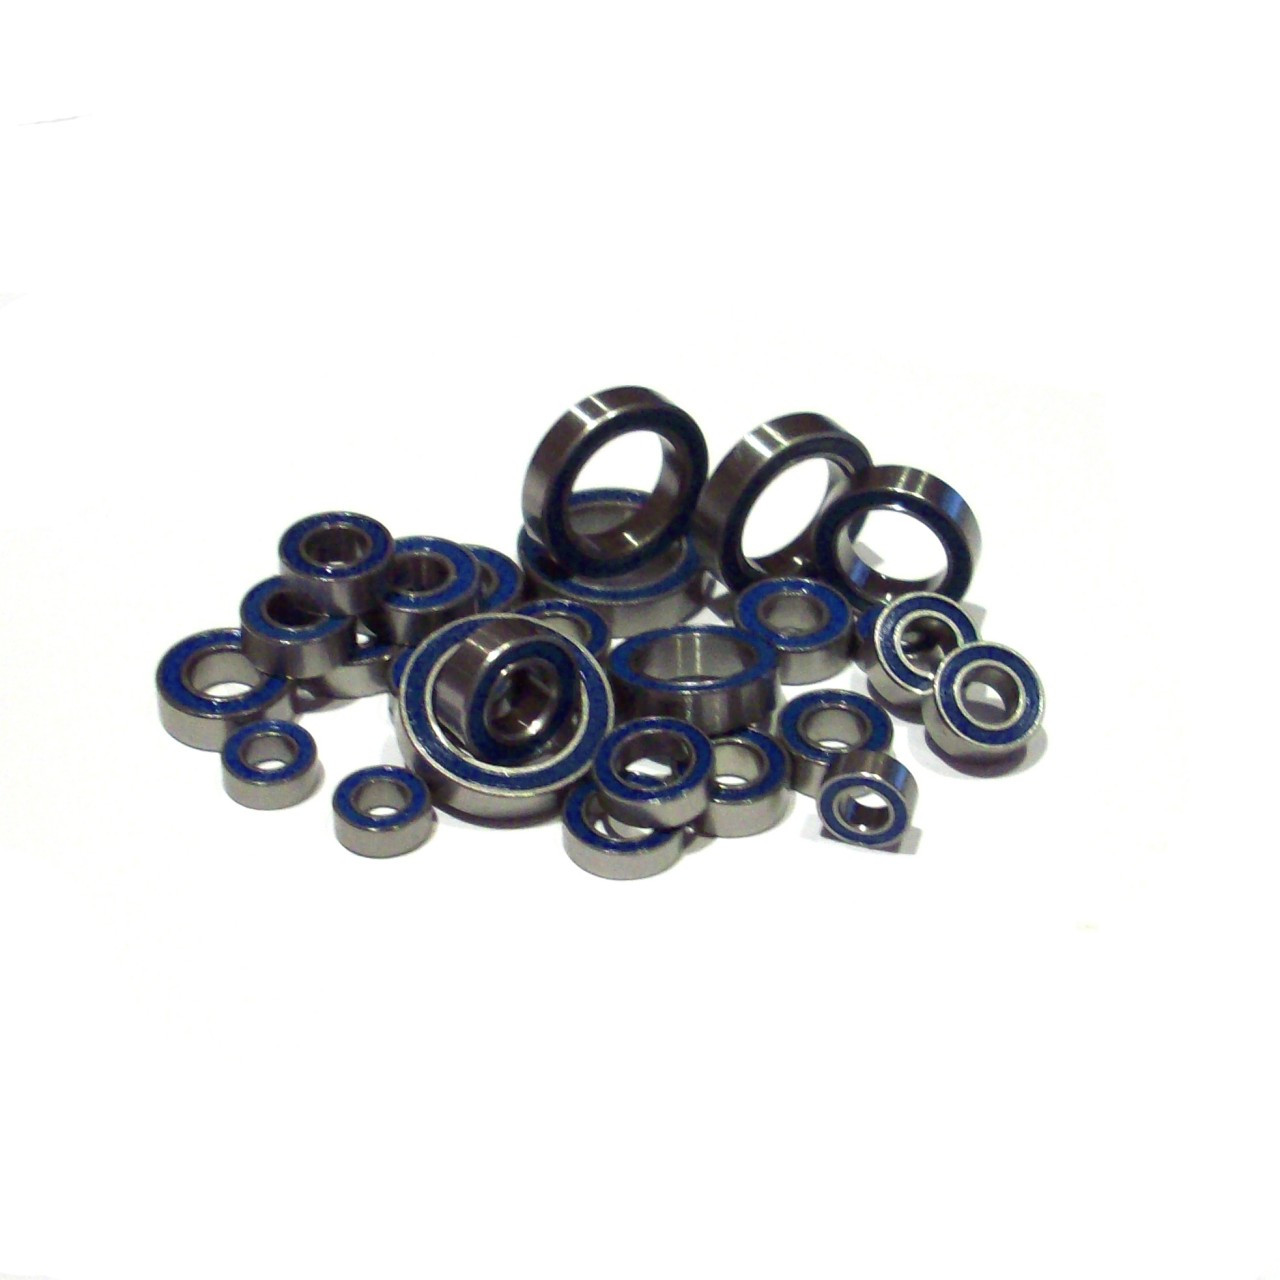 Team Losi Competition Crawler Full 26 piece bearing kits includes all bearings on the truck.  Super slick blue rubber sealed bearings.